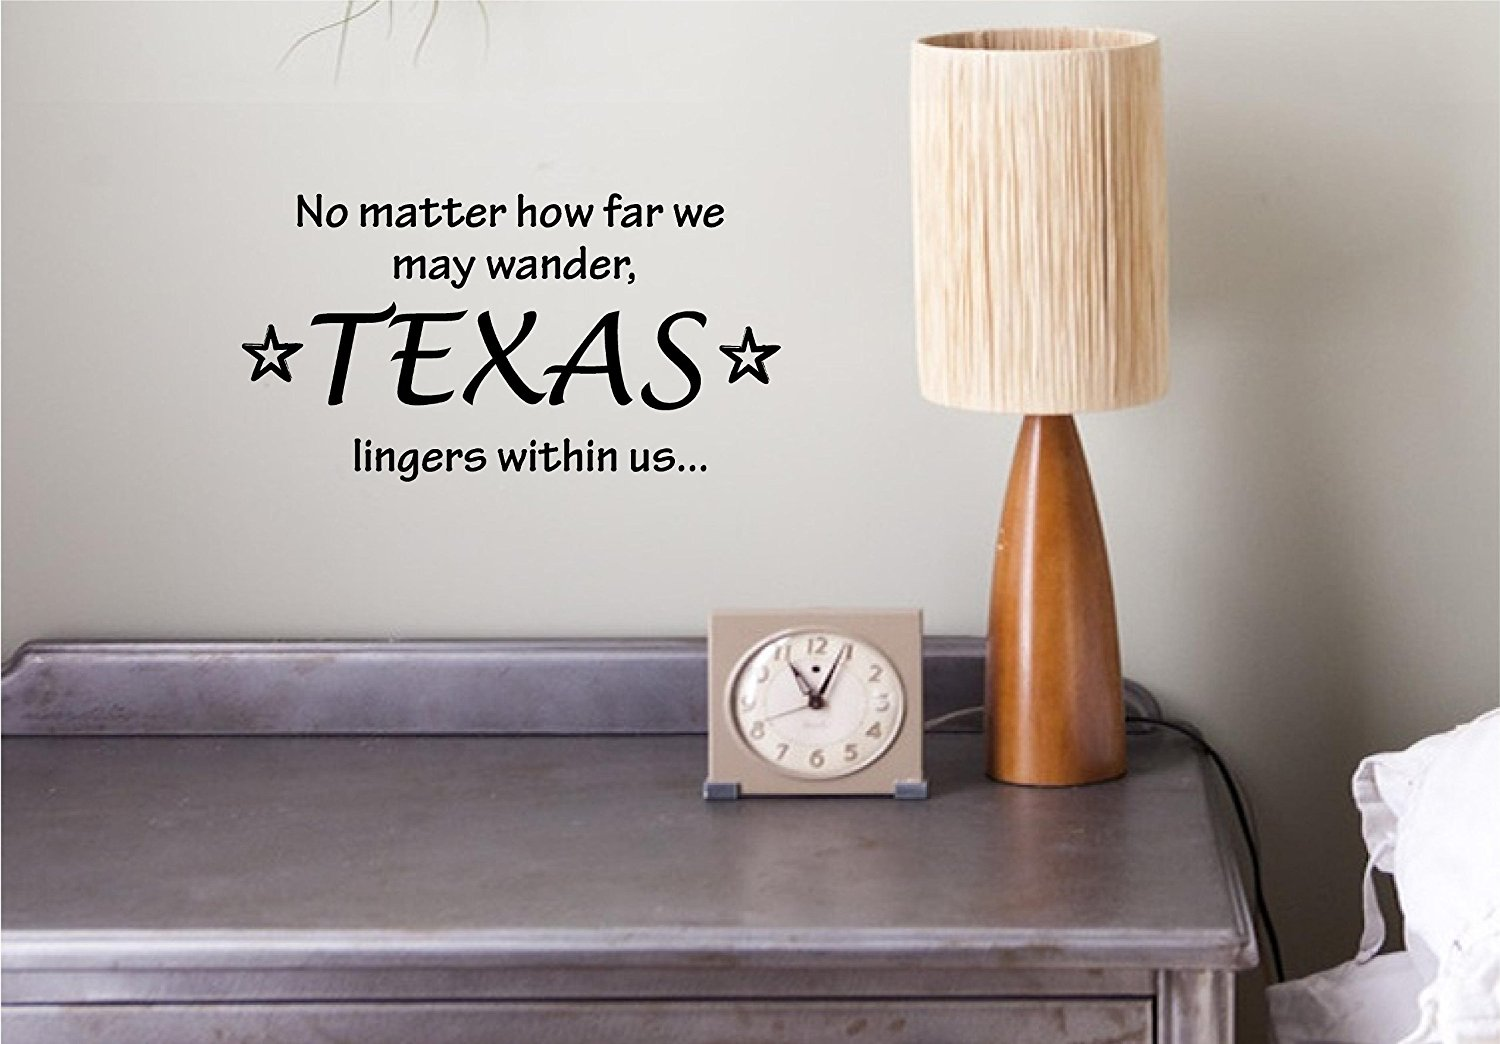 No matter how far we may wander, TEXAS lingers within us...Vinyl